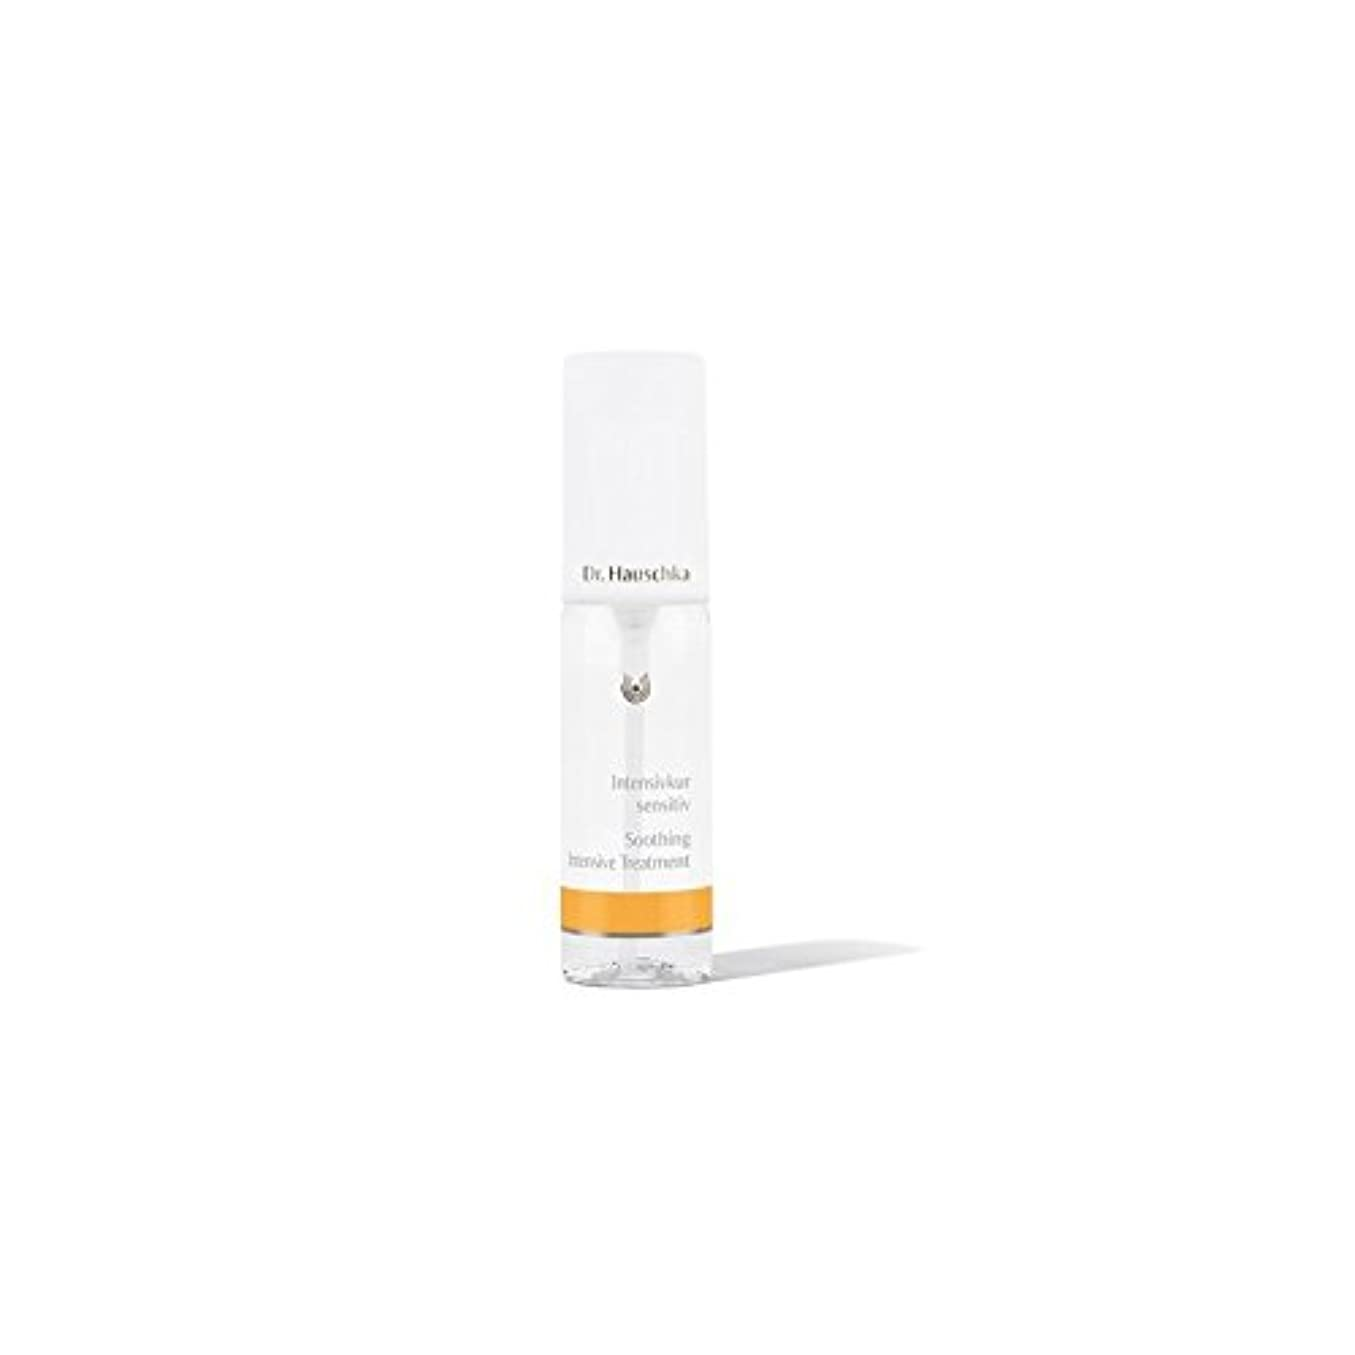 Dr. Hauschka Soothing Intensive Treatment 40ml (Pack of 6) - 集中治療の40ミリリットルをなだめるハウシュカ x6 [並行輸入品]